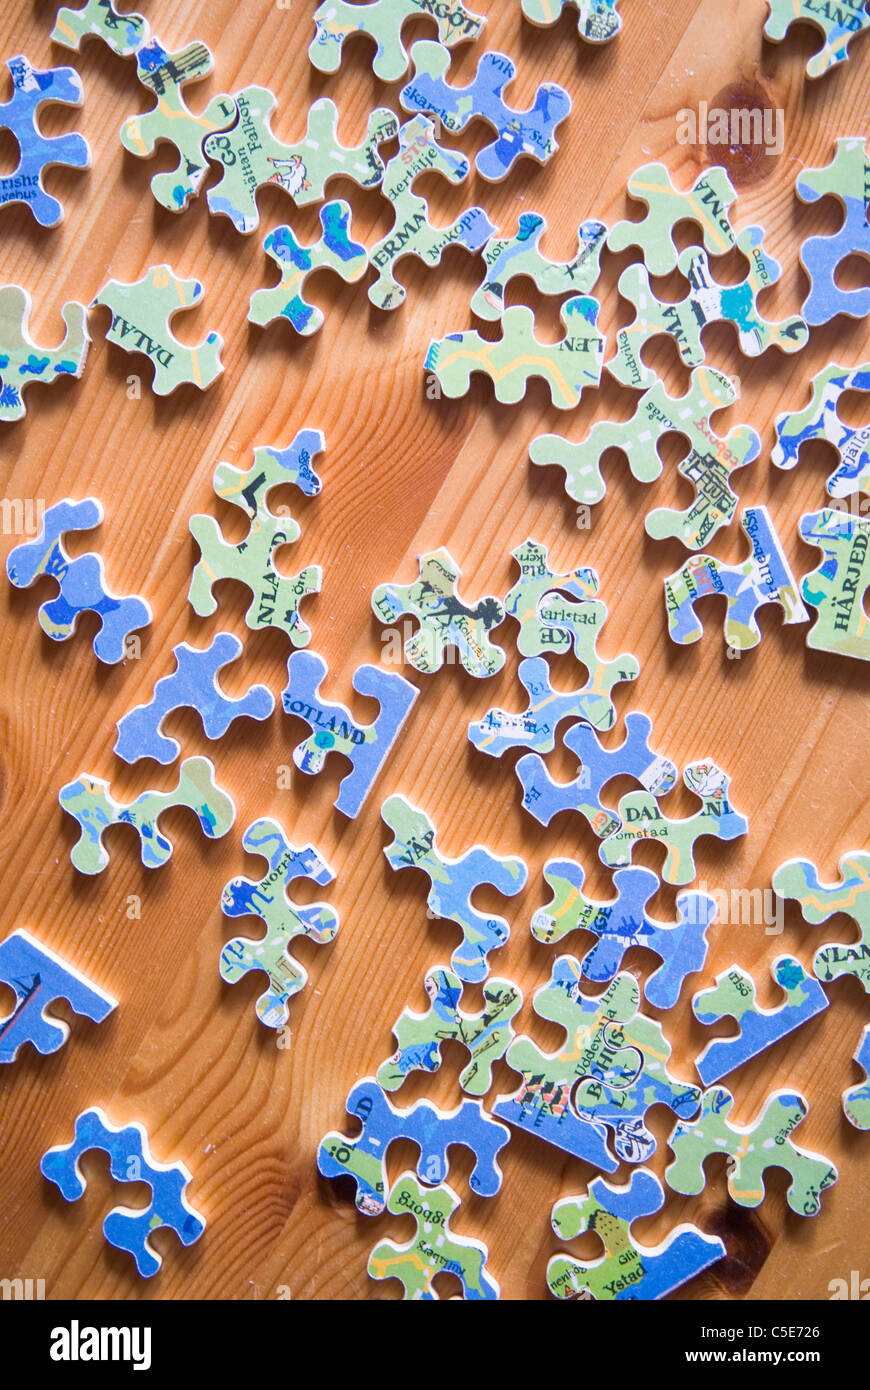 Close Up Of Scattered Pieces Of Jigsaw Puzzle On Wooden Floor Stock